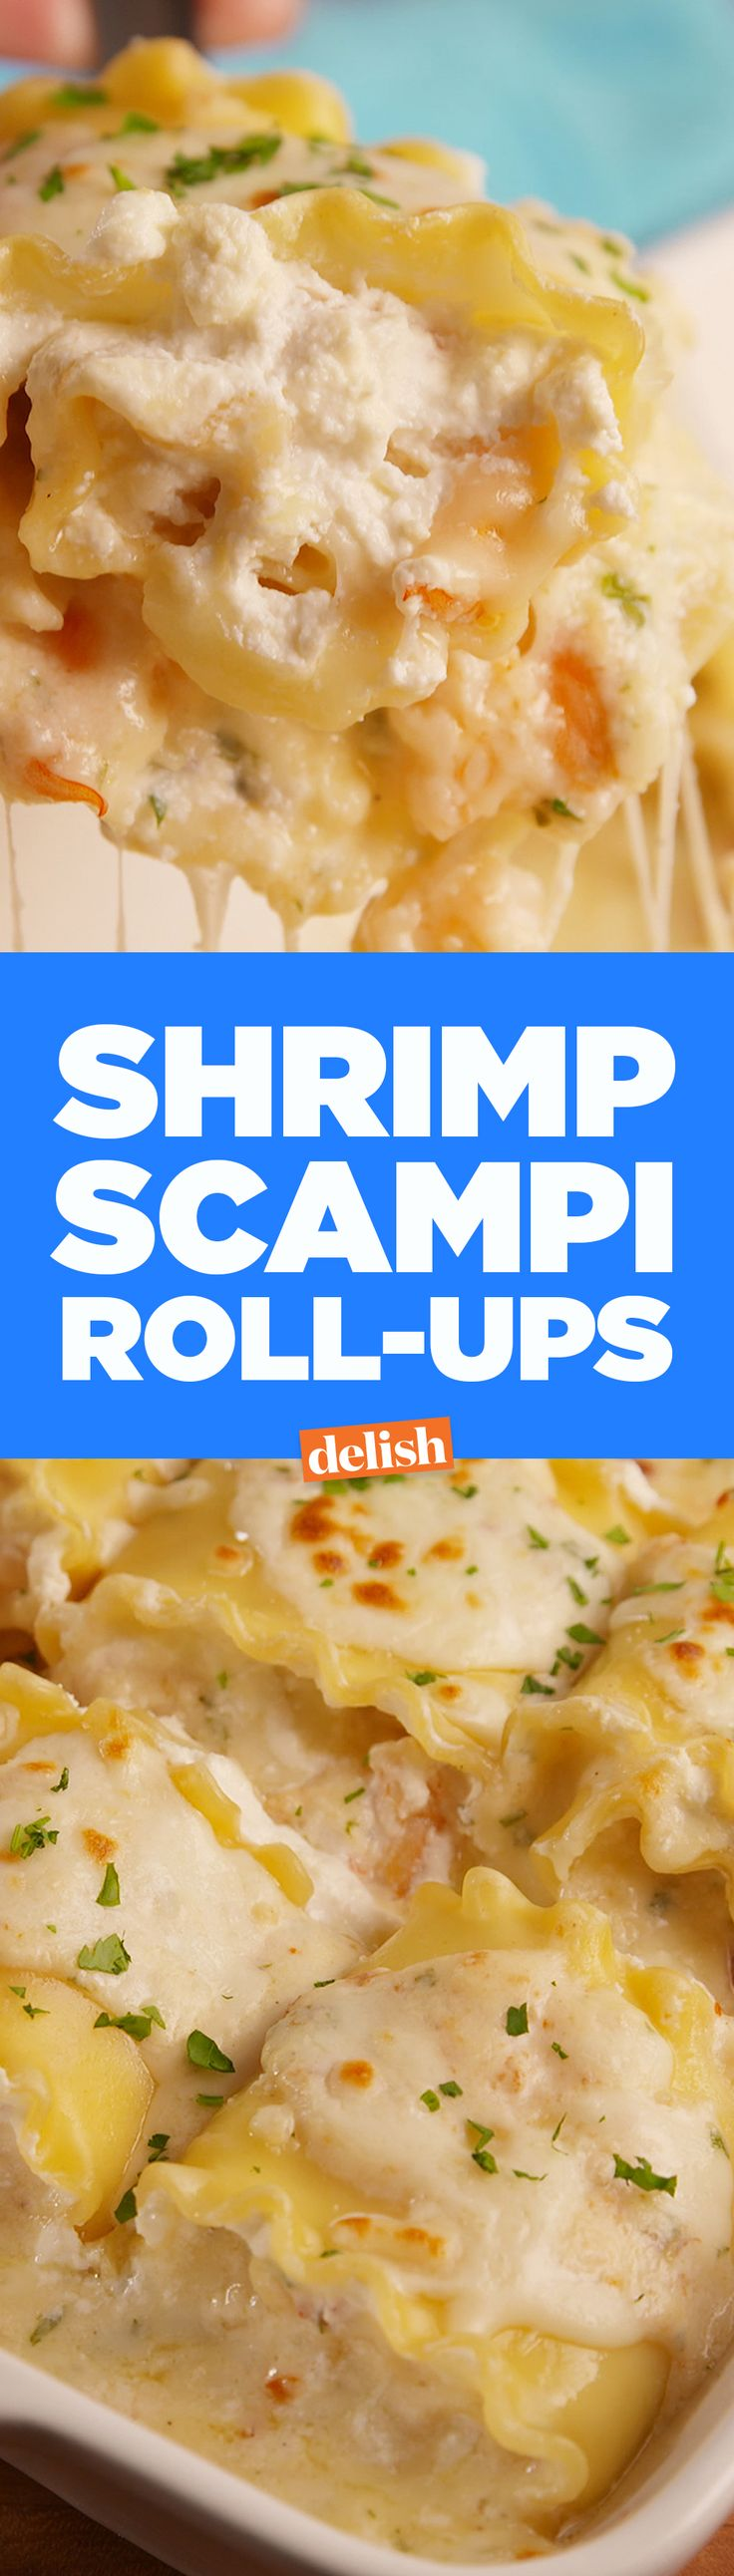 Shrimp Scampi Roll-Ups are the menu item Olive Garden is missing. Get the recipe on Delish.com.